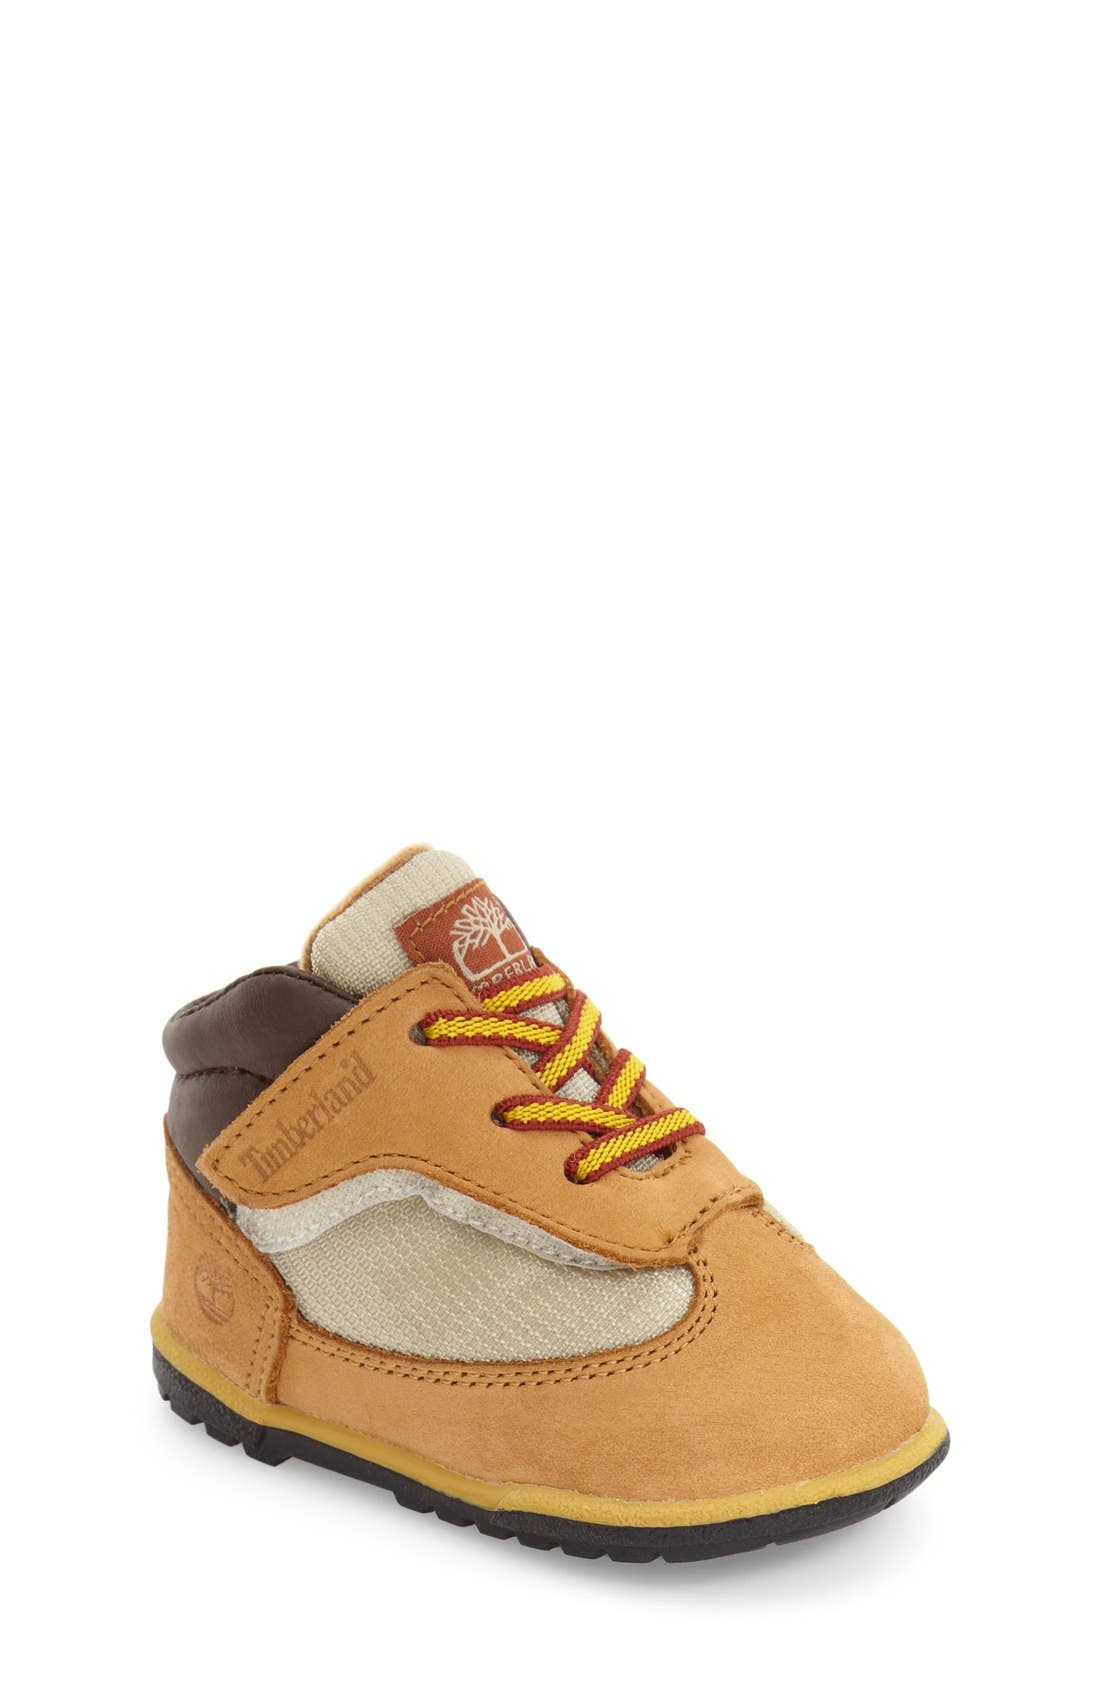 Main Image - Timberland Field Crib Boot (Baby)